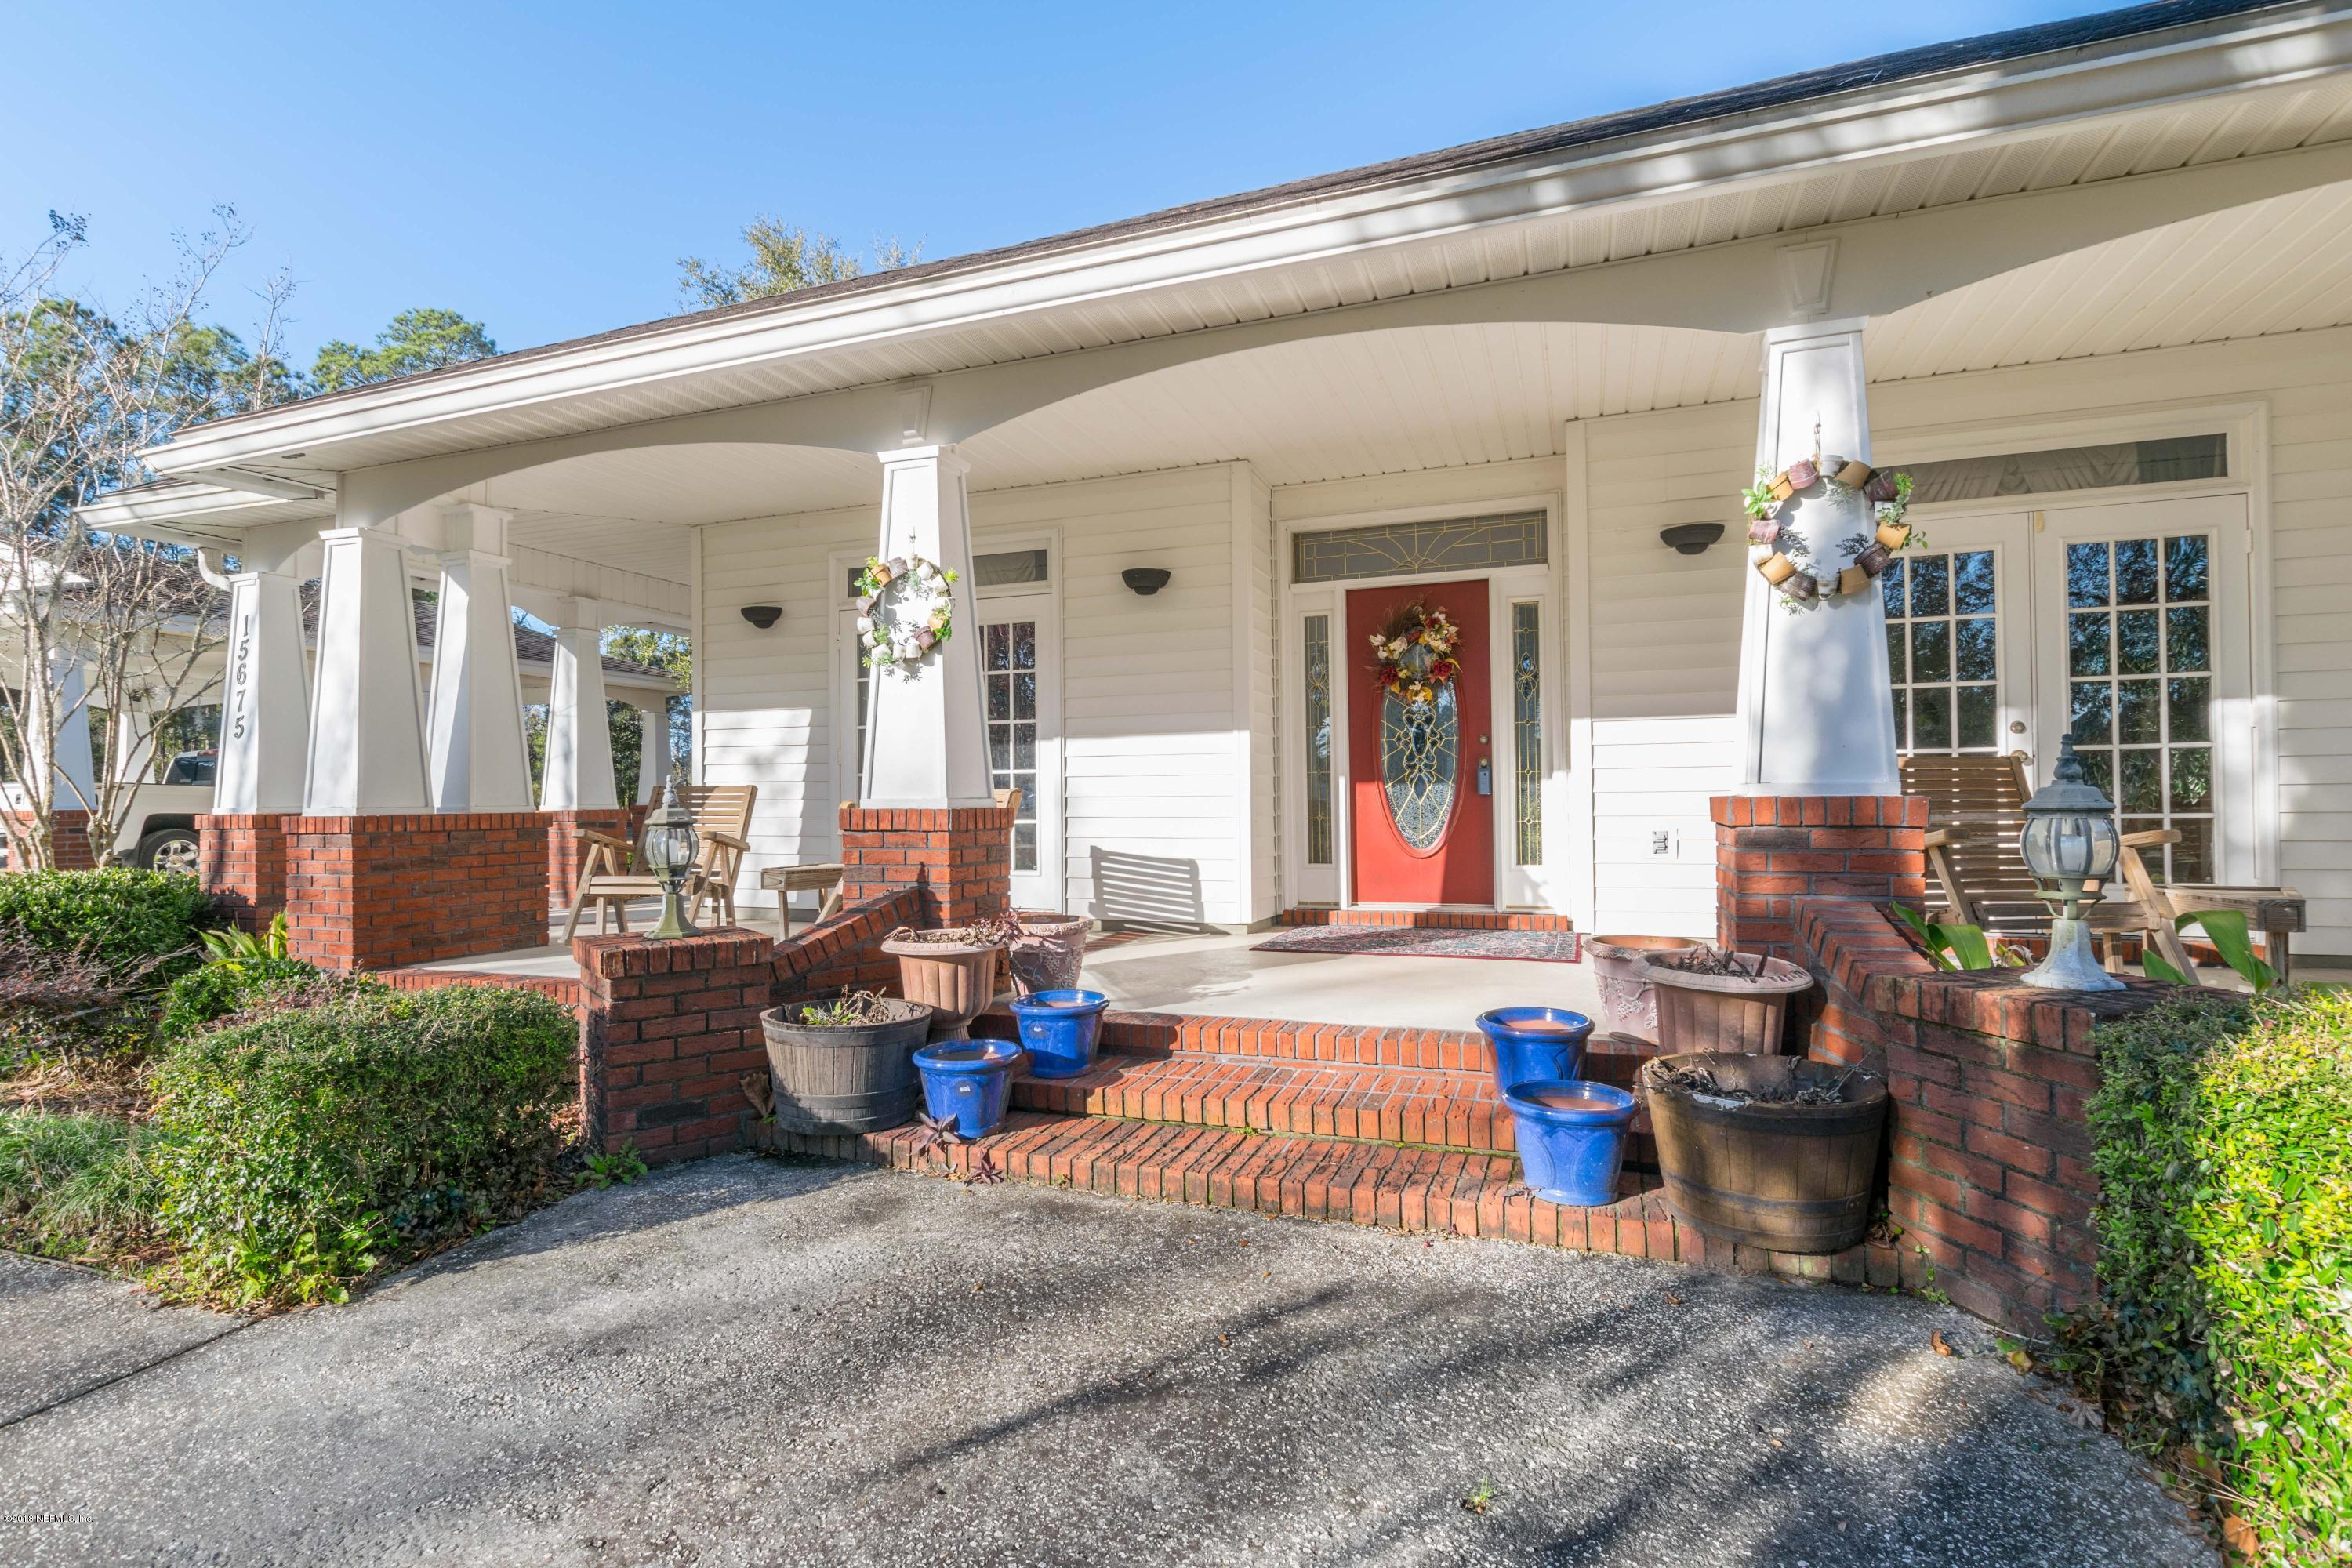 15675 TISON, JACKSONVILLE, FLORIDA 32218, 3 Bedrooms Bedrooms, ,3 BathroomsBathrooms,Residential - single family,For sale,TISON,919242